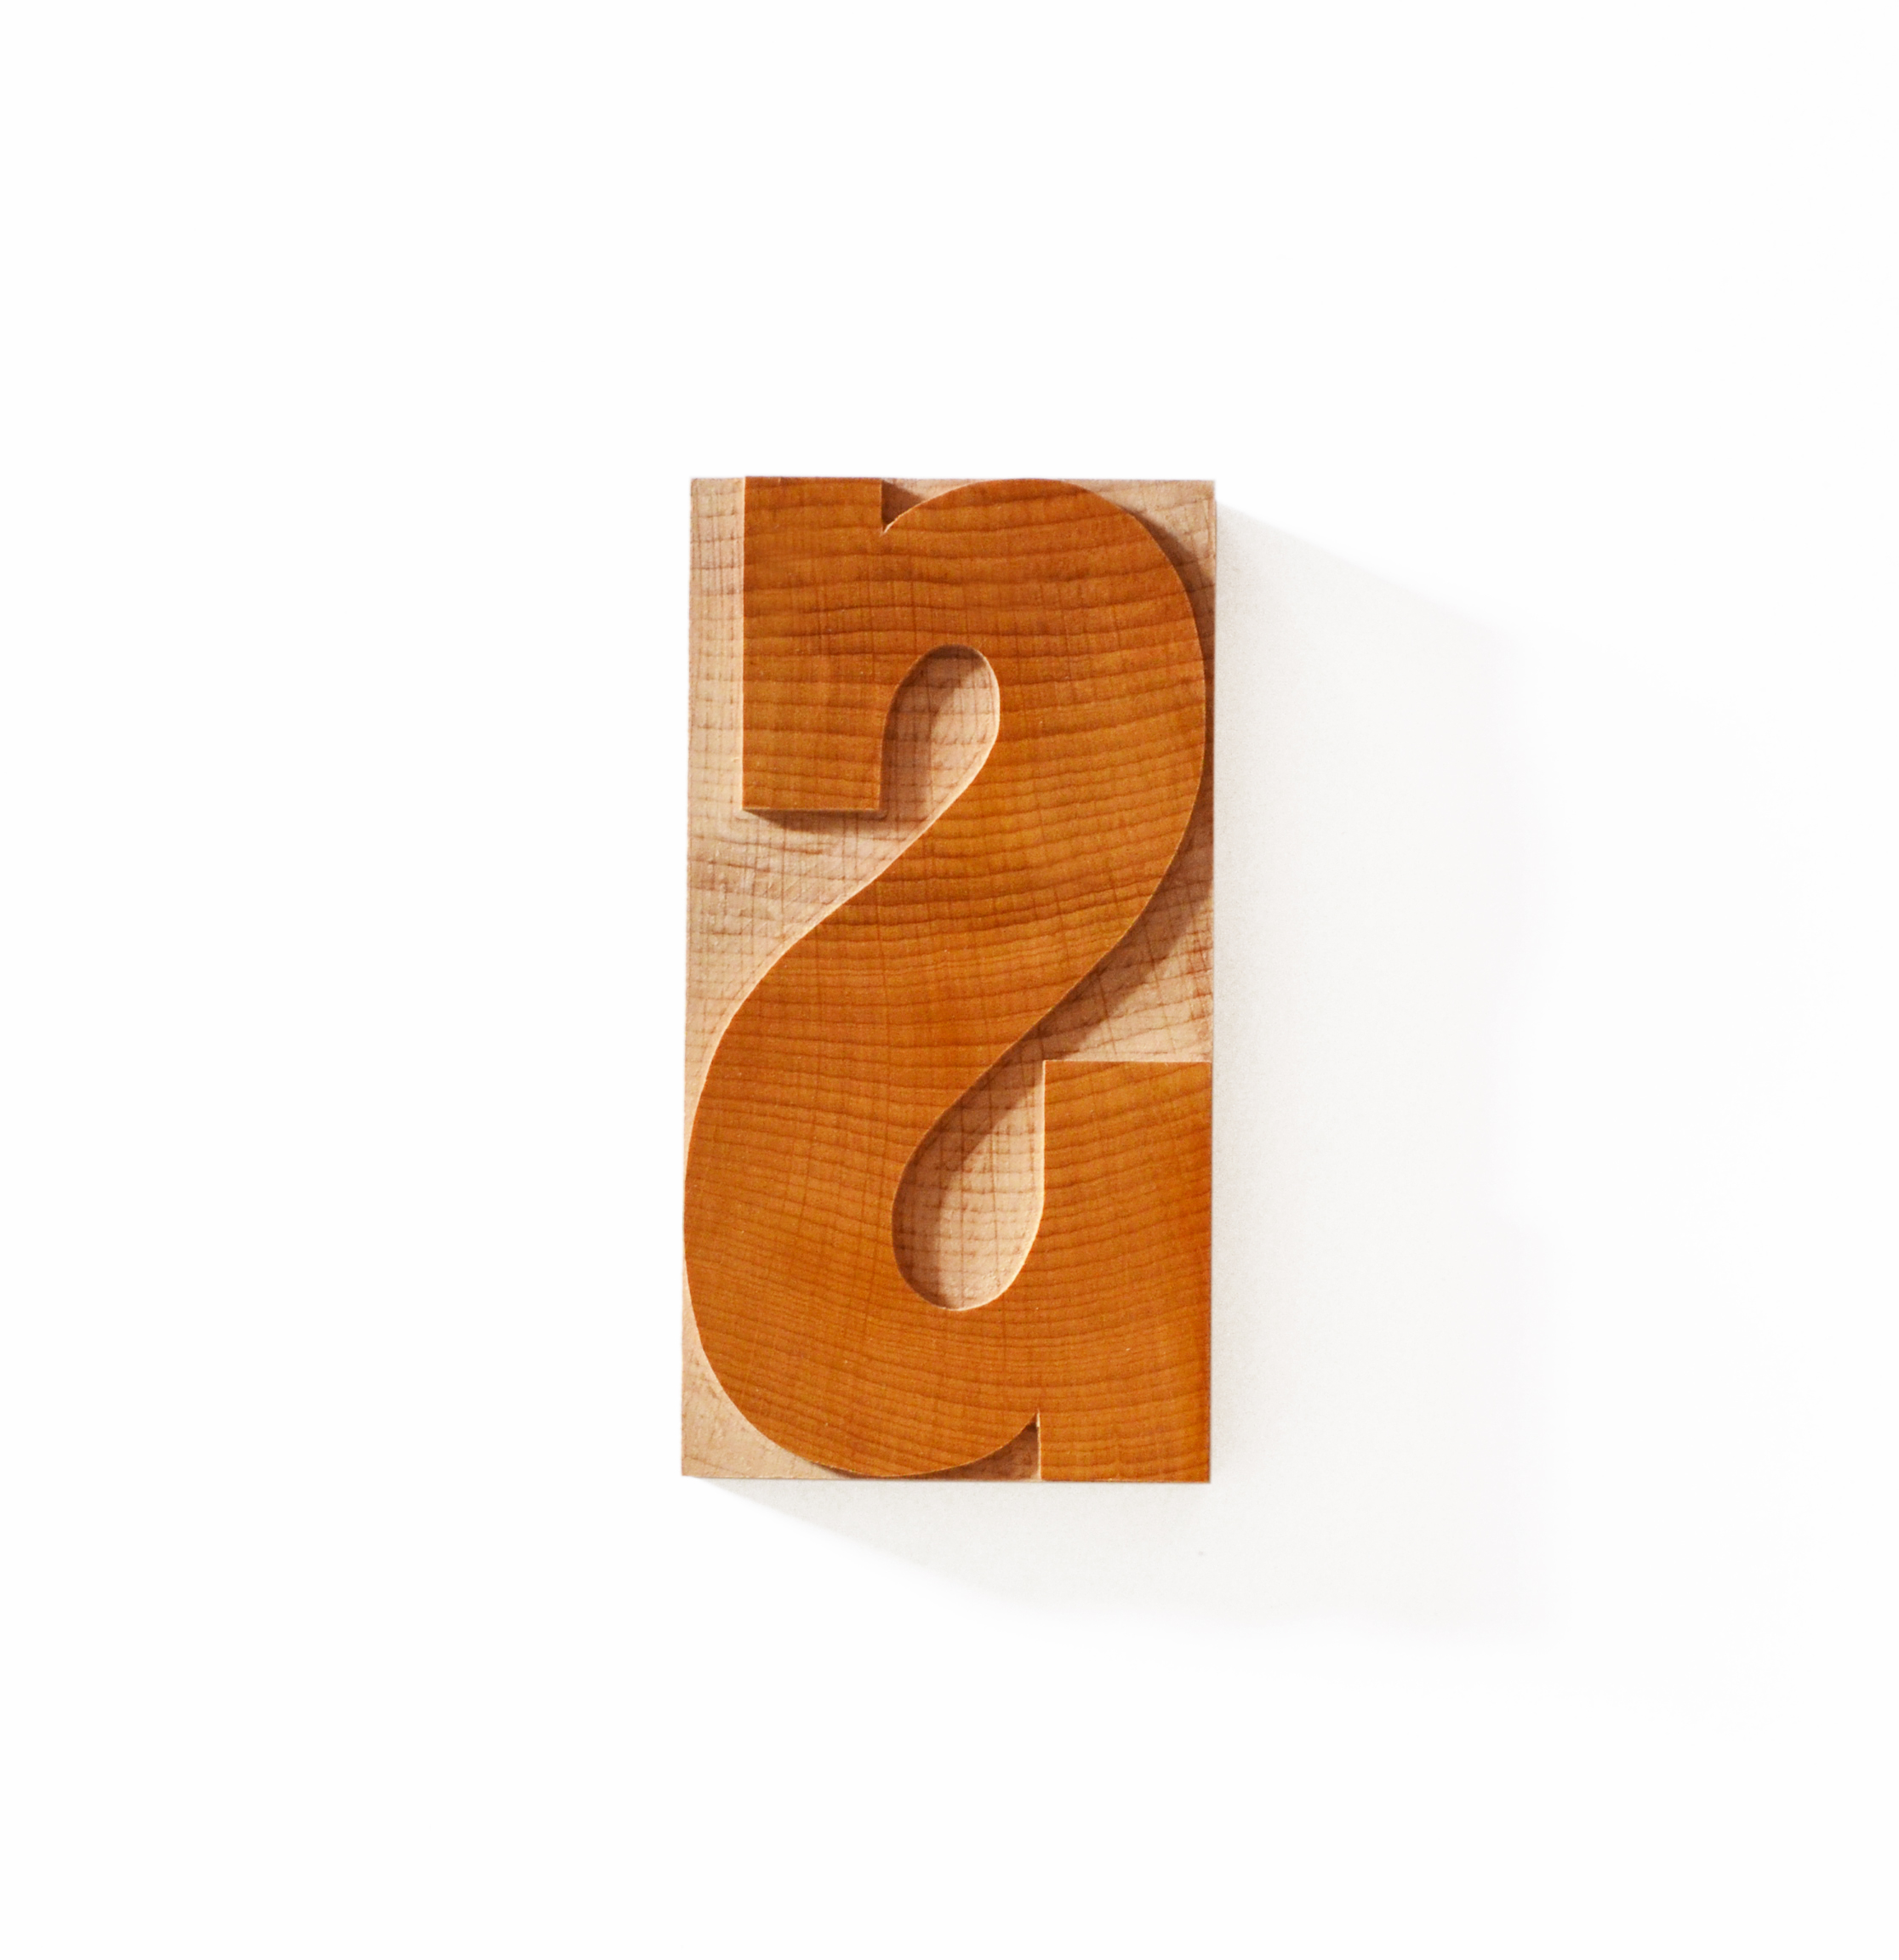 Slab Serif Wood Type